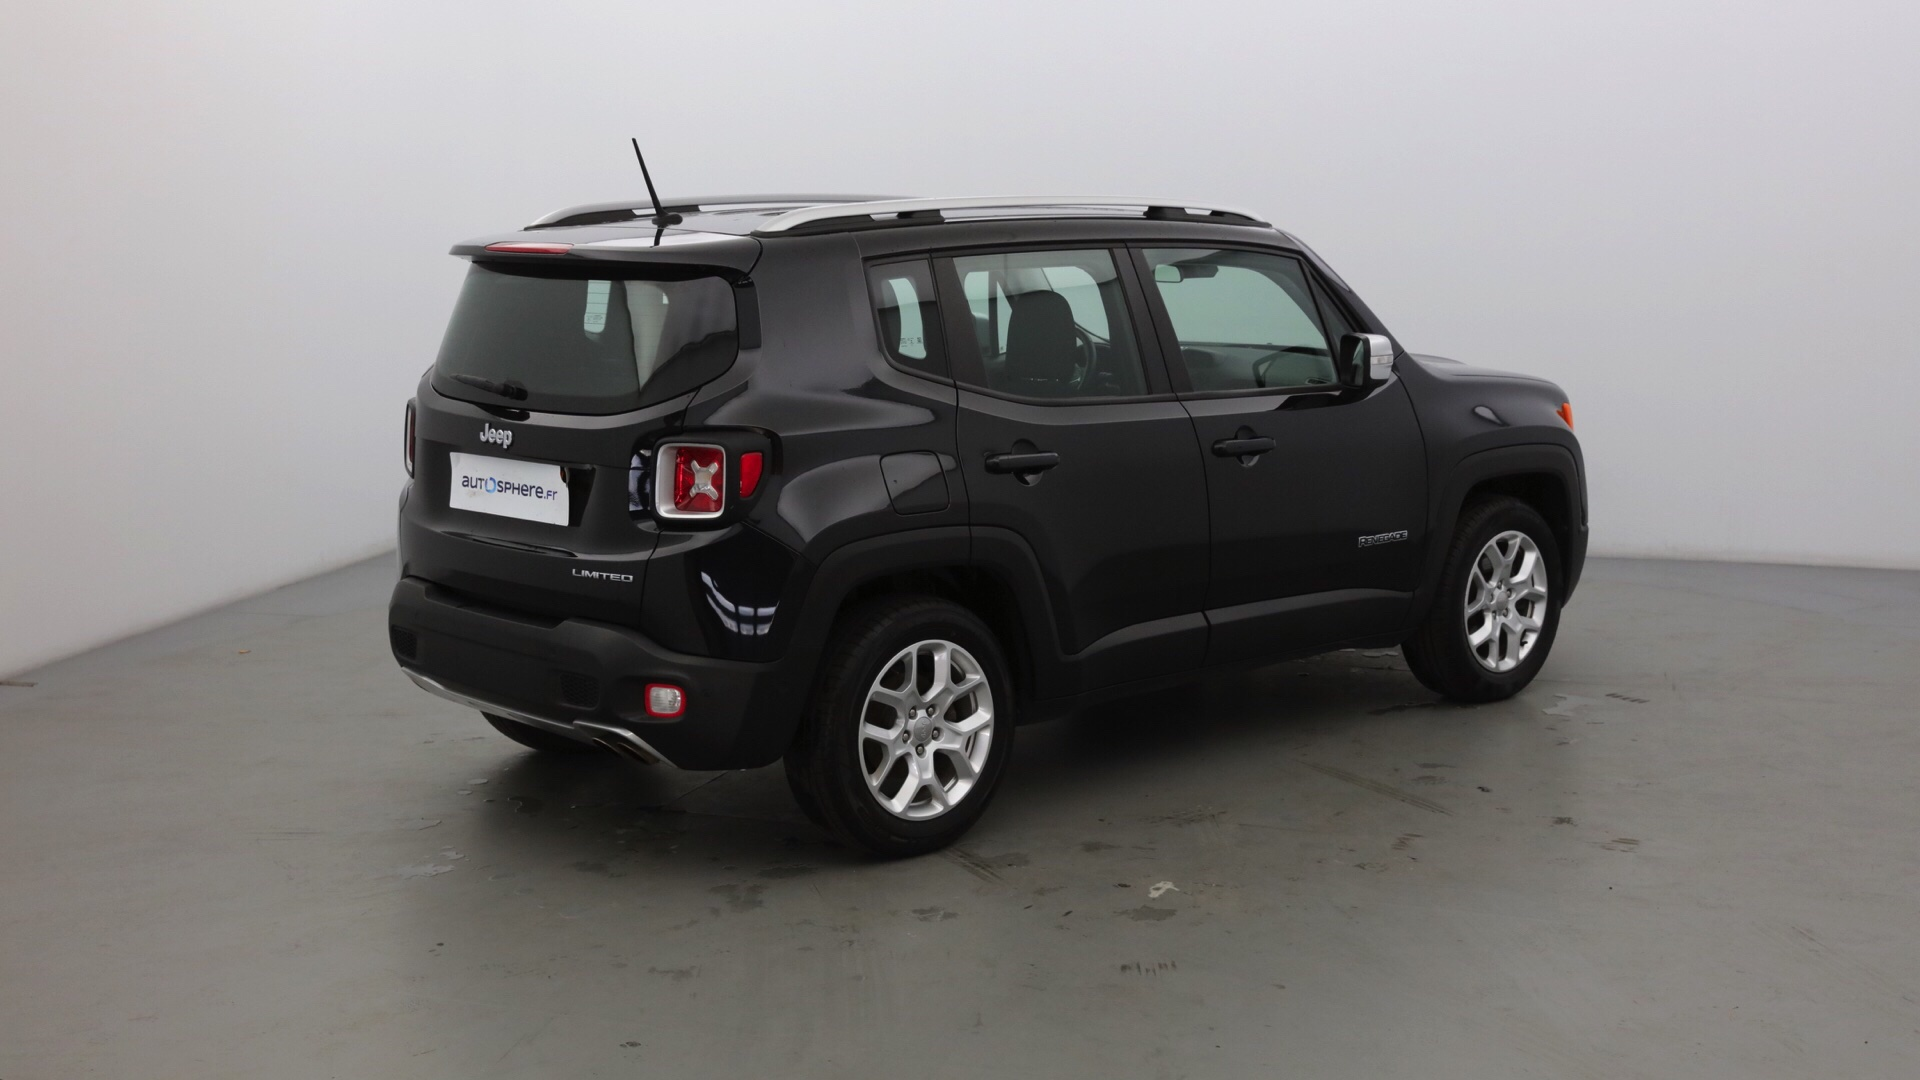 JEEP RENEGADE 1.4 MULTIAIR S&S 140CH LIMITED BVRD6 - Miniature 5